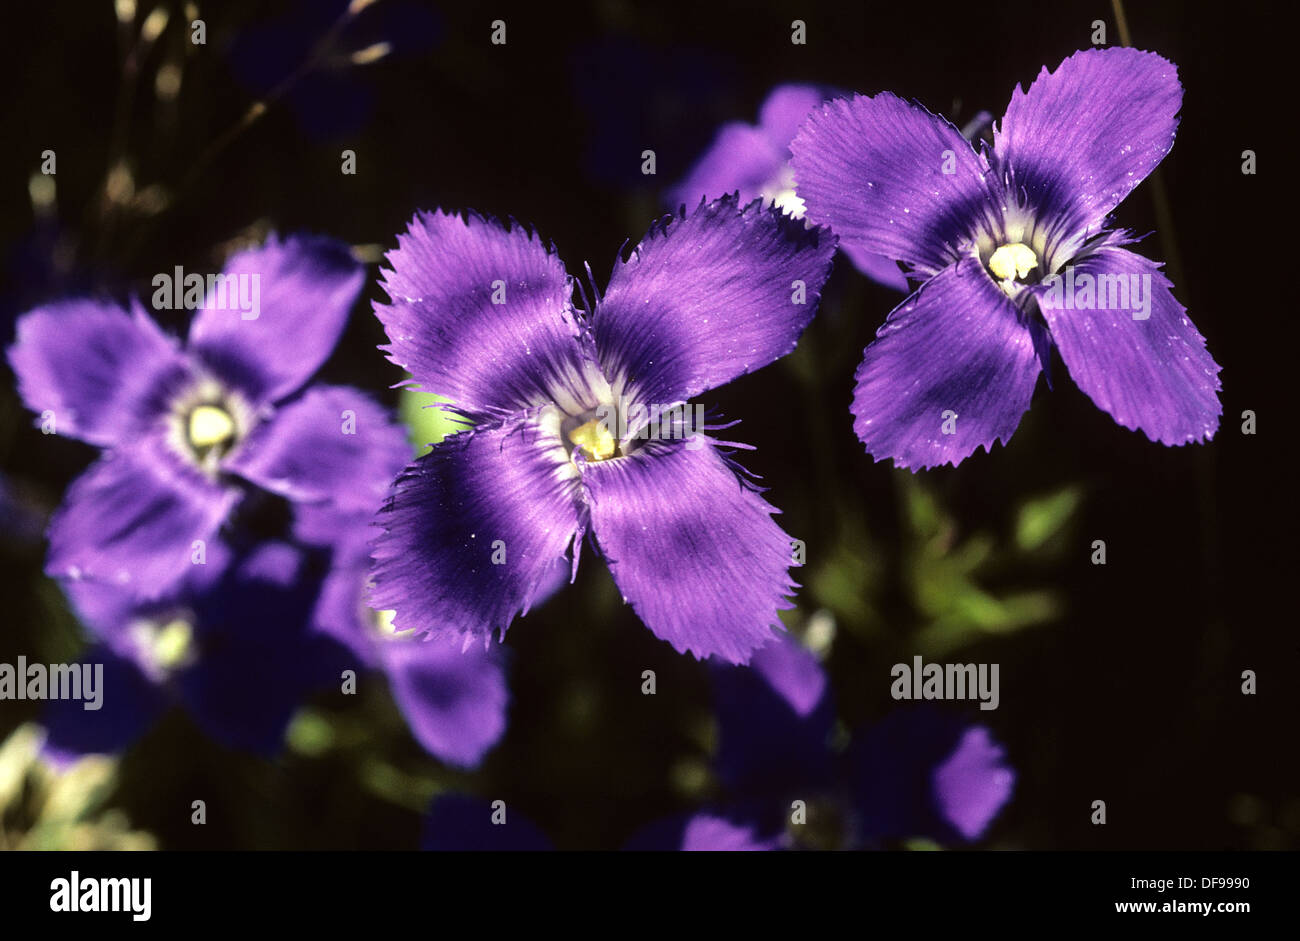 Elk265-1980 Wyoming, Yellowstone National Park, wildflowers, Fringed Gentian - Stock Image